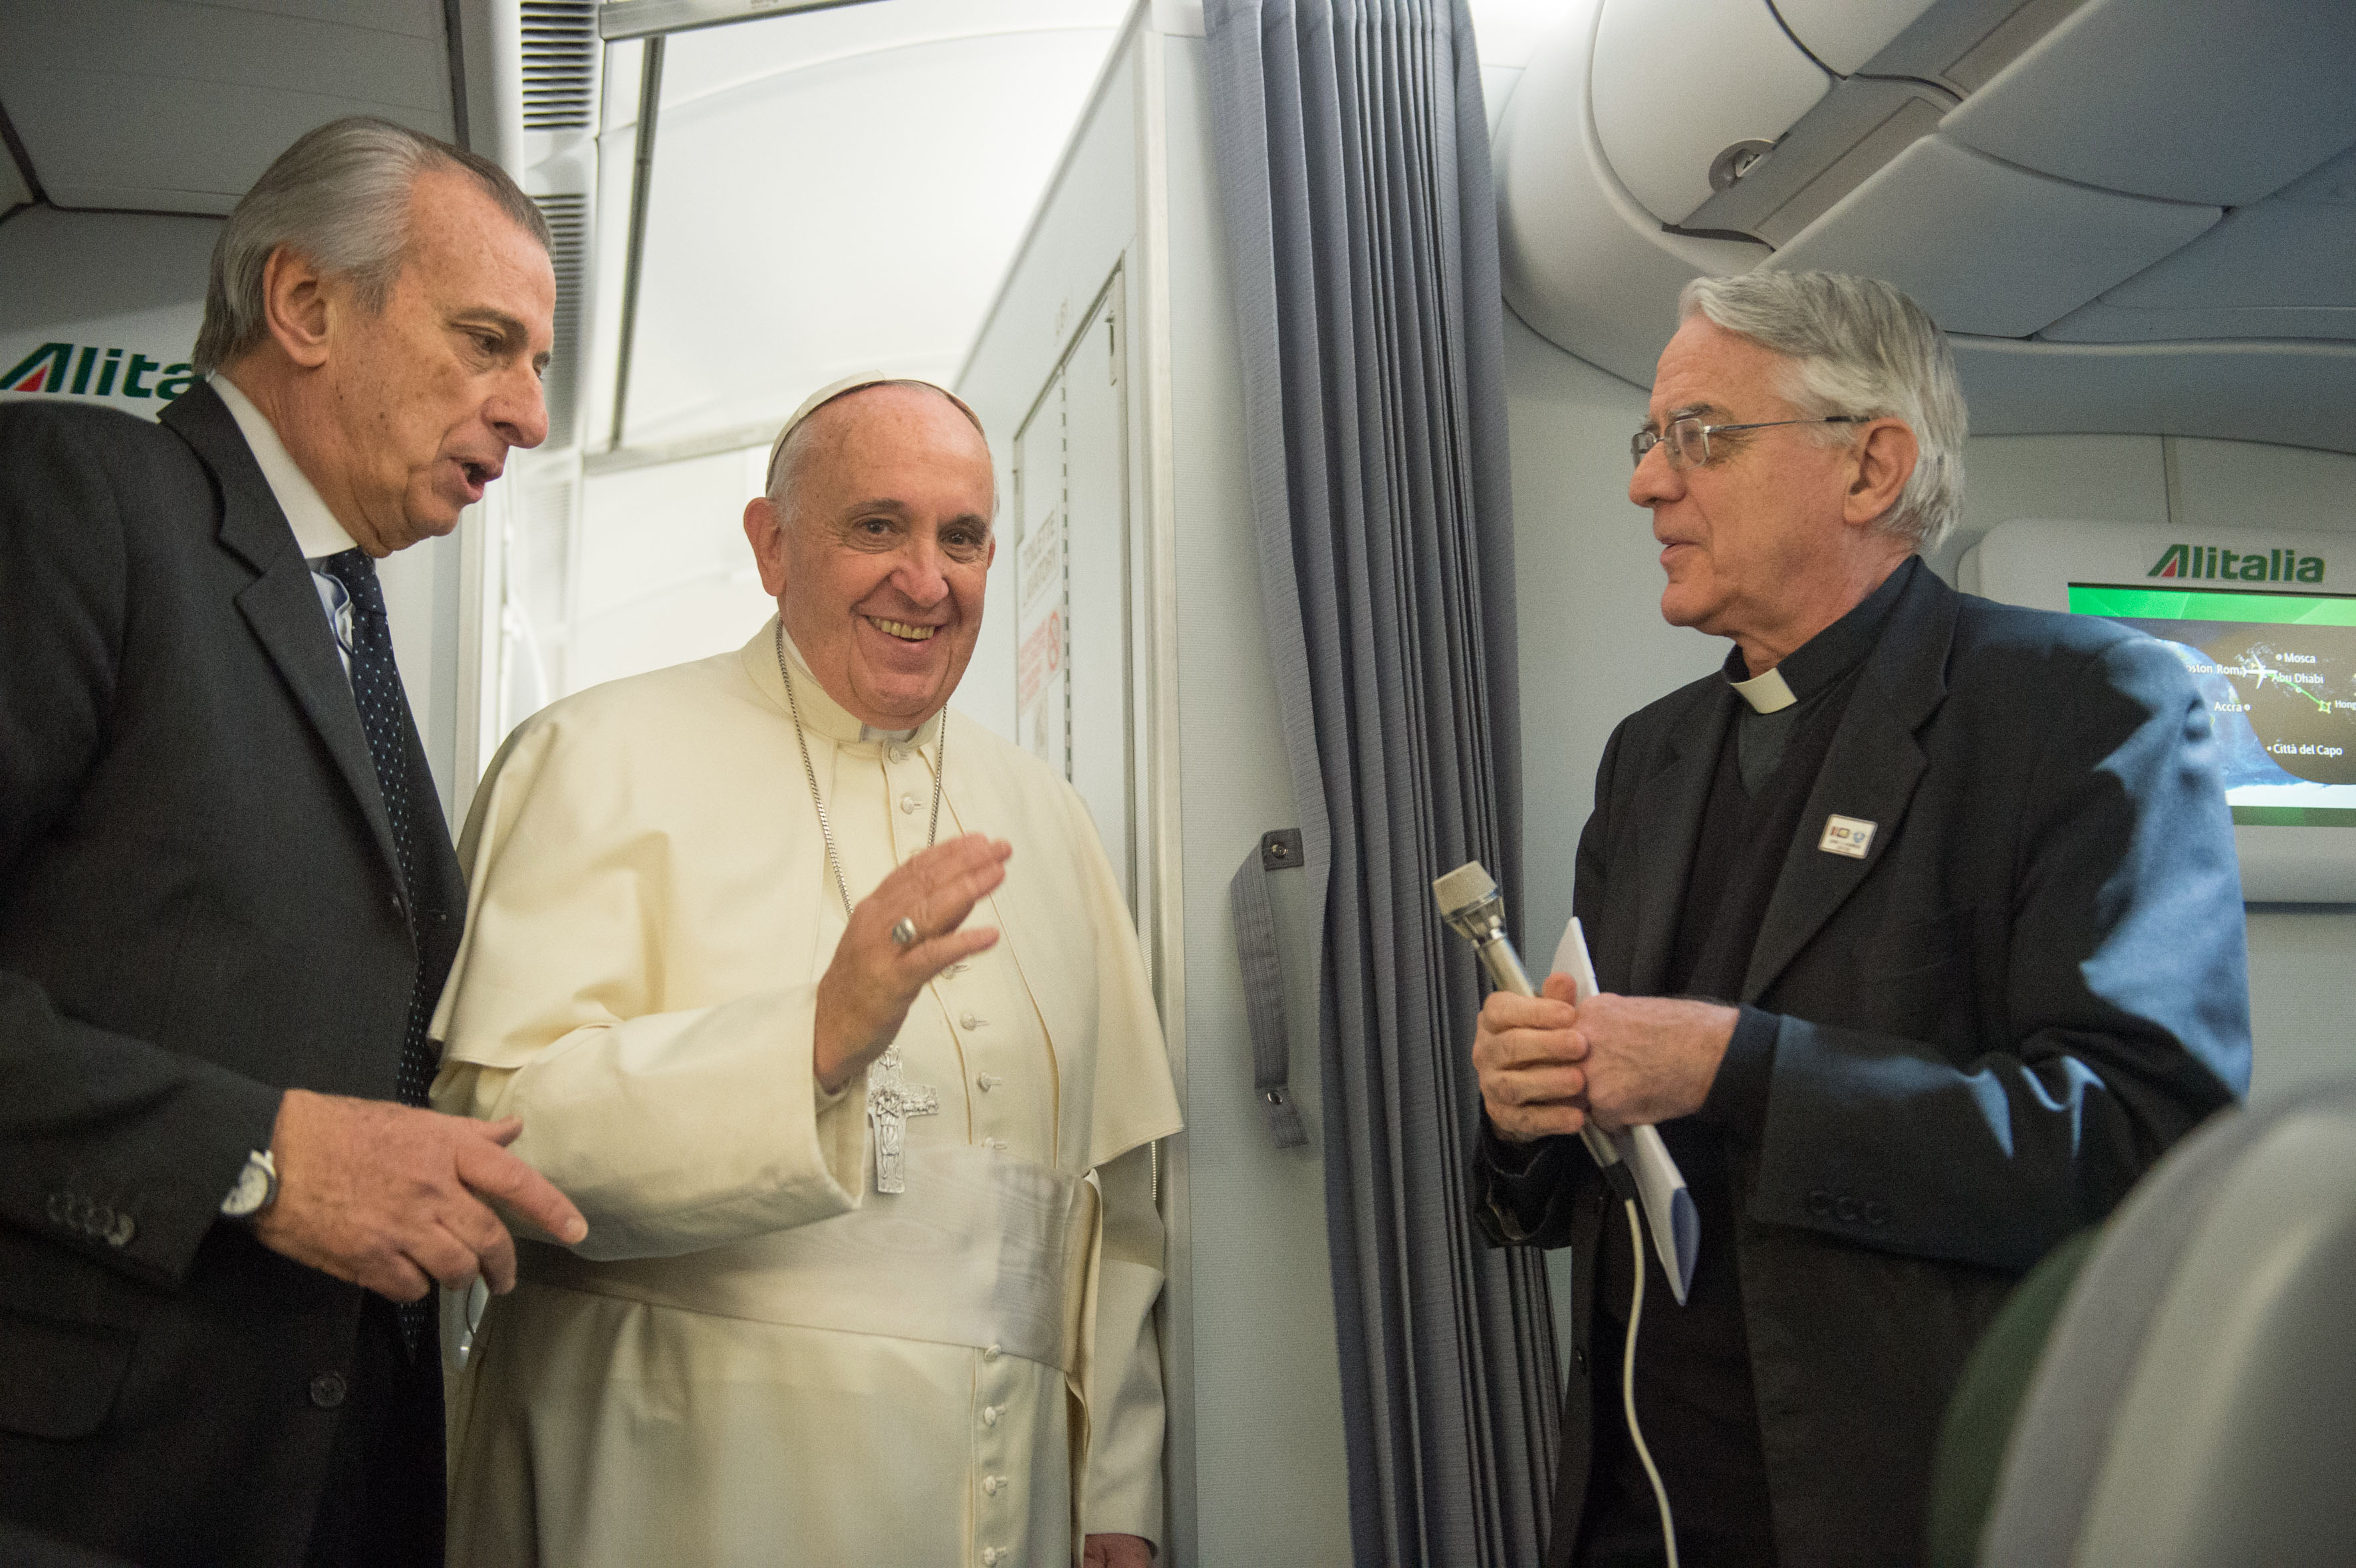 Pope Francis in airplane (archive)